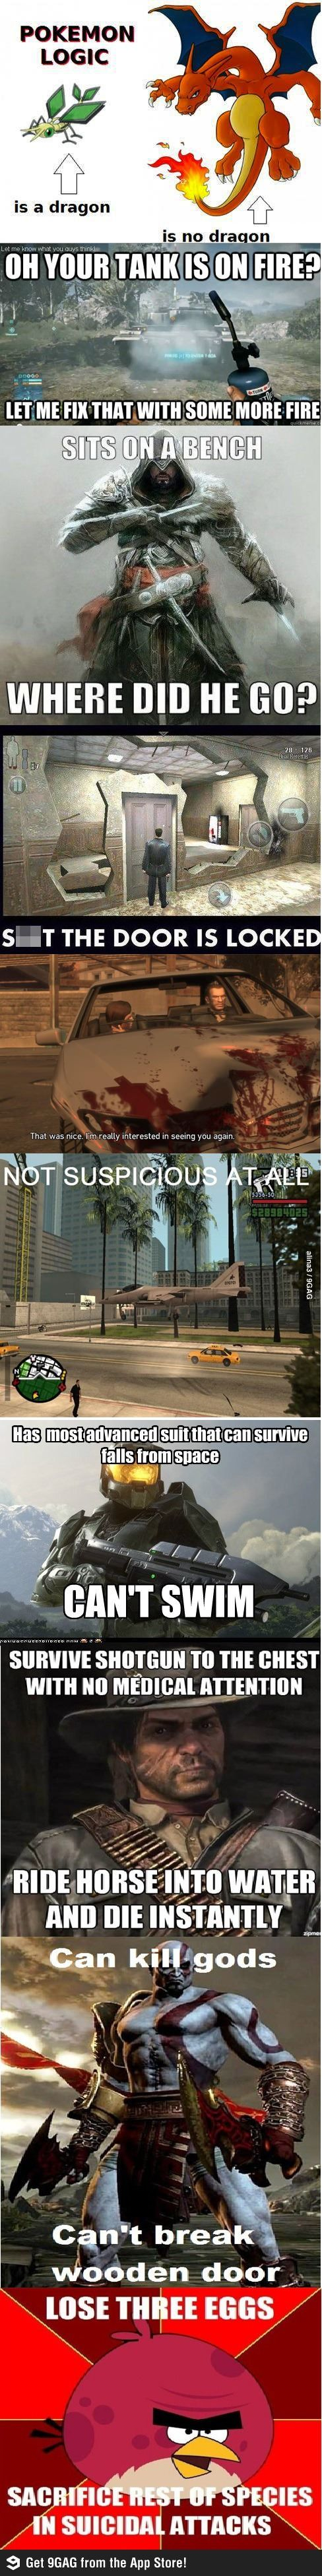 game logic video game